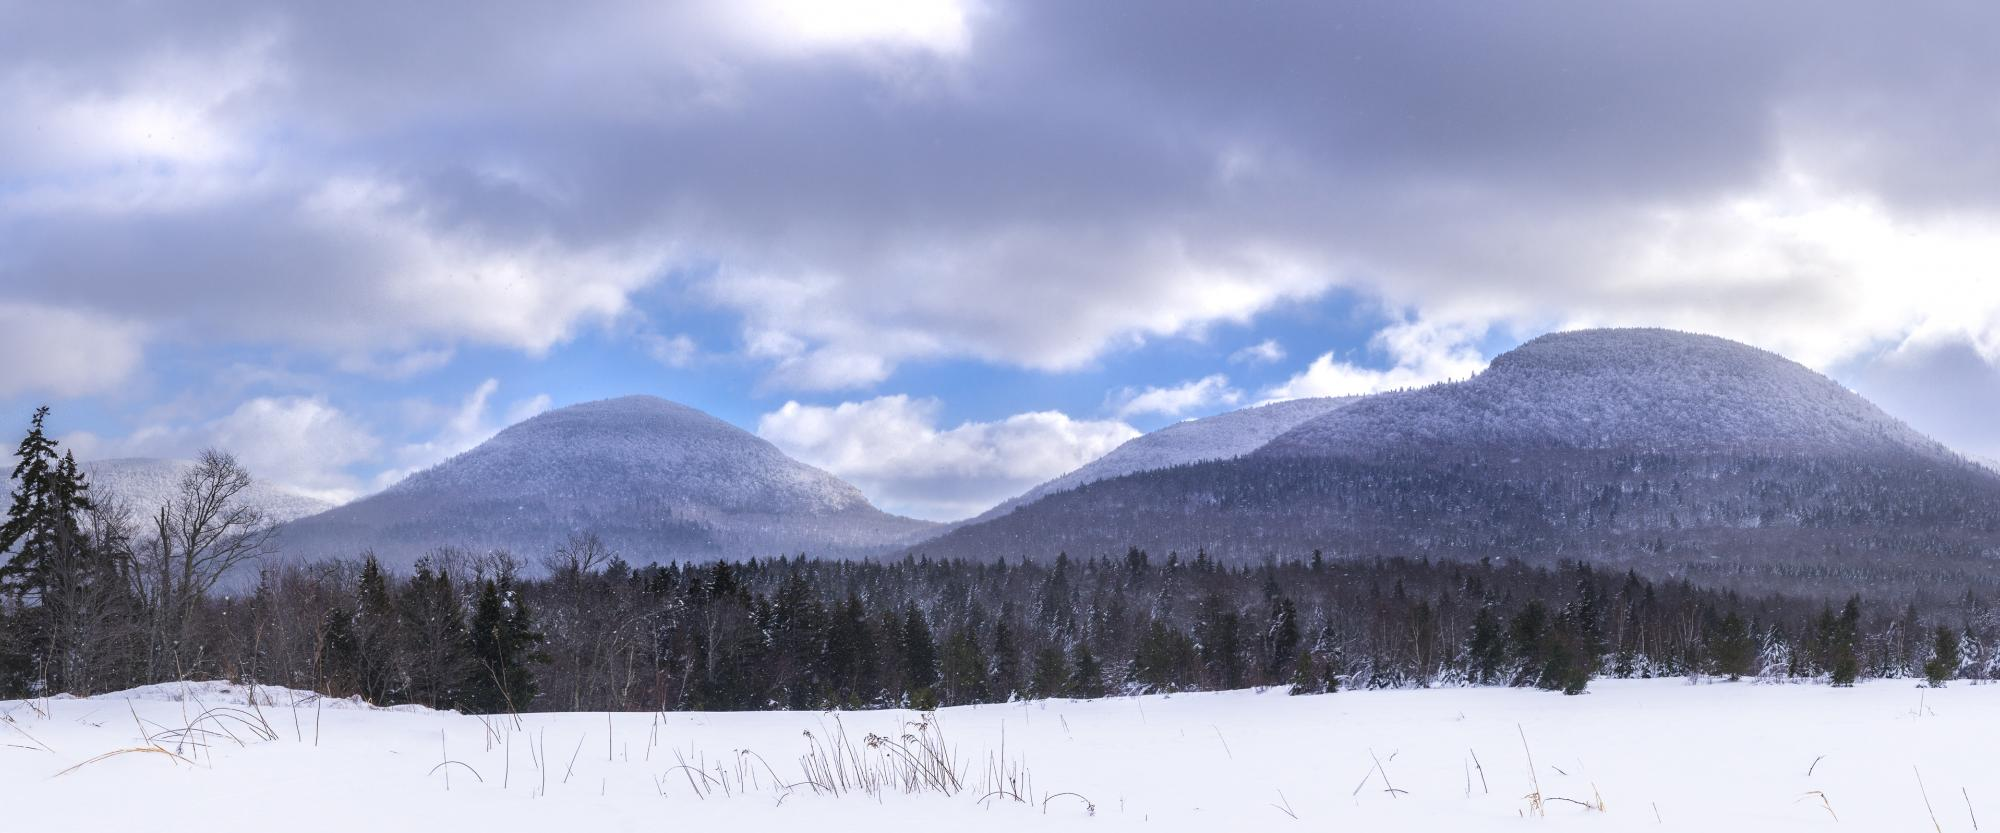 Twin and Sugarloaf mountains in the winter. Photo credit: Steve Aaron